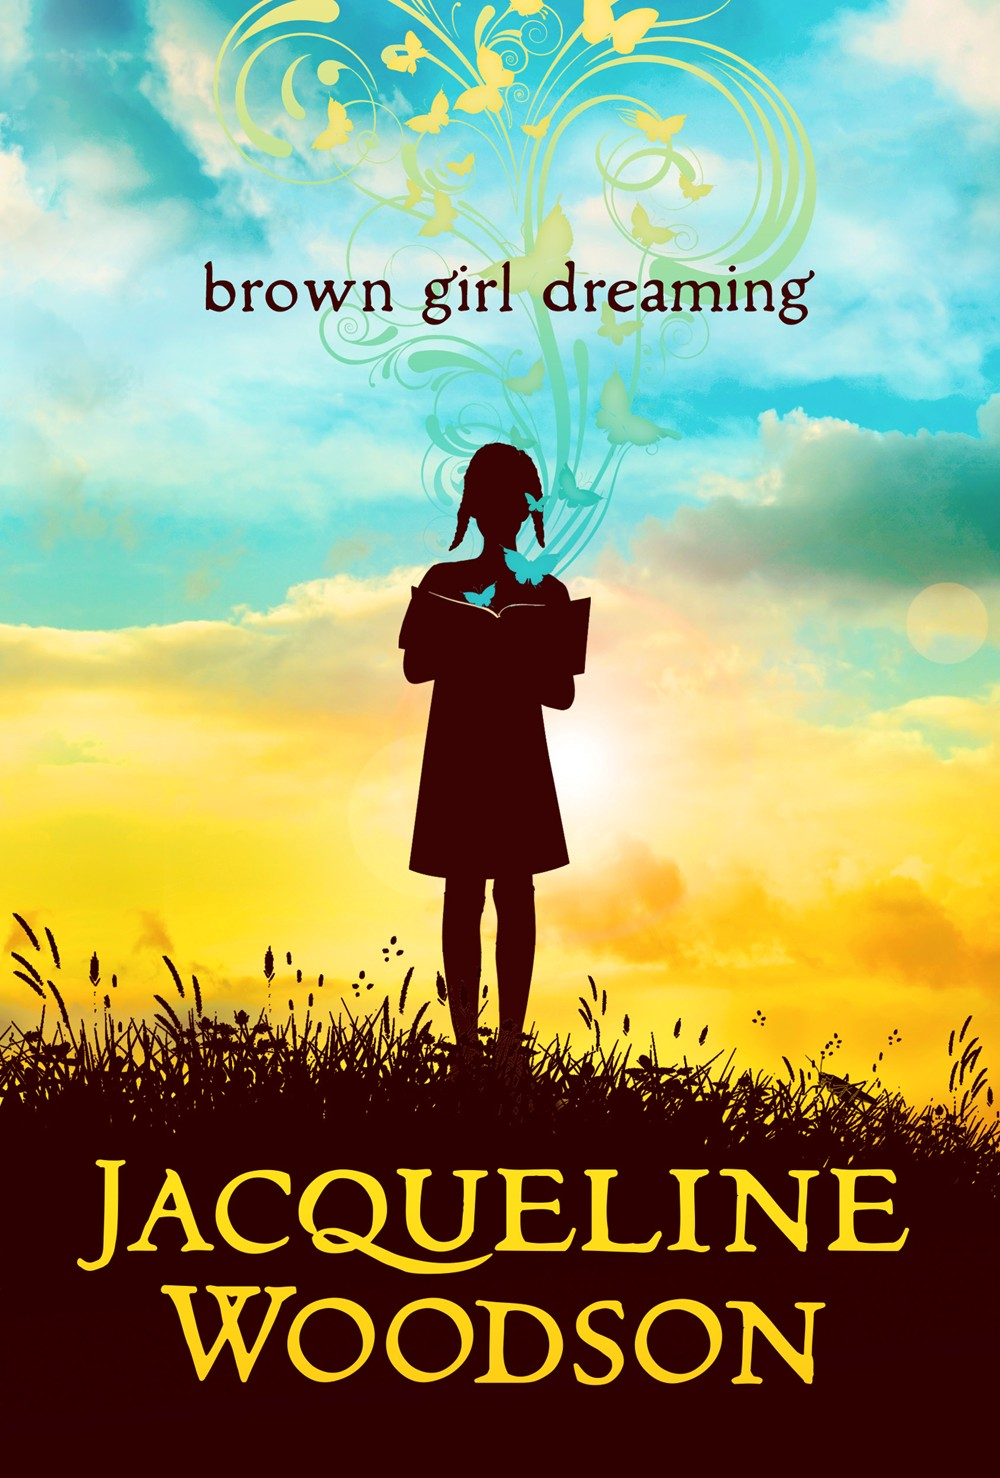 Middle Grade Book Club: Brown Girl Dreaming by Jacqueline Woodson